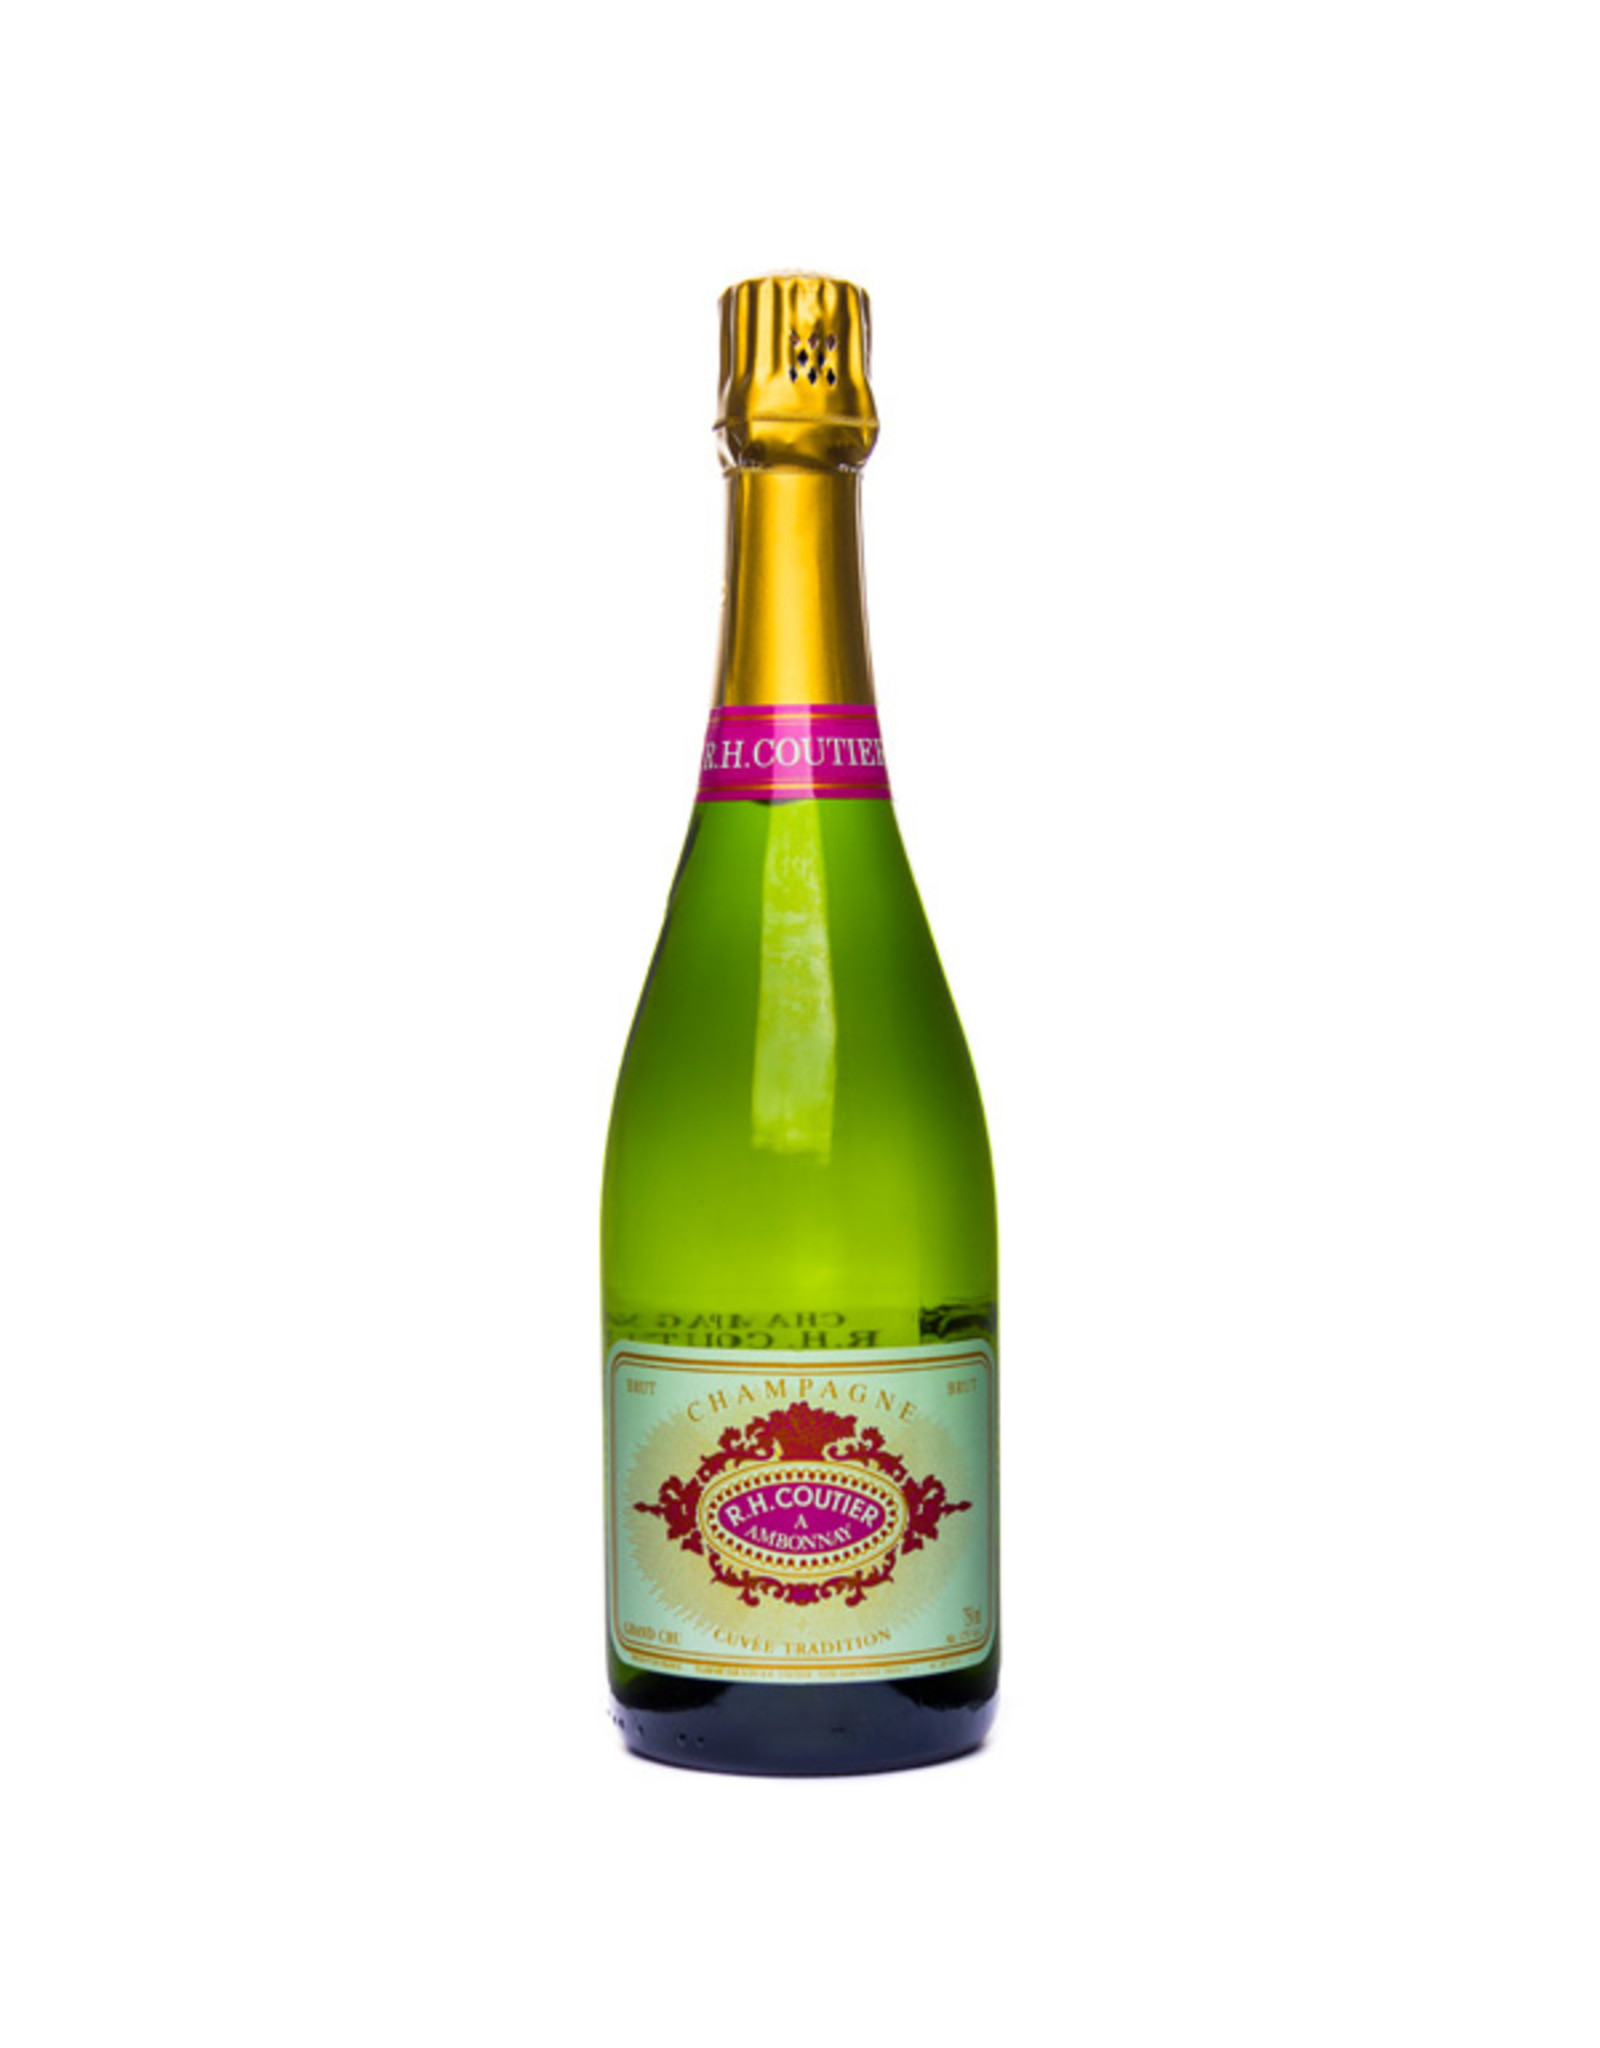 R.H. Coutier, Ambonnay Coutier Champagne Grand Cru Cuvée Tradition Brut